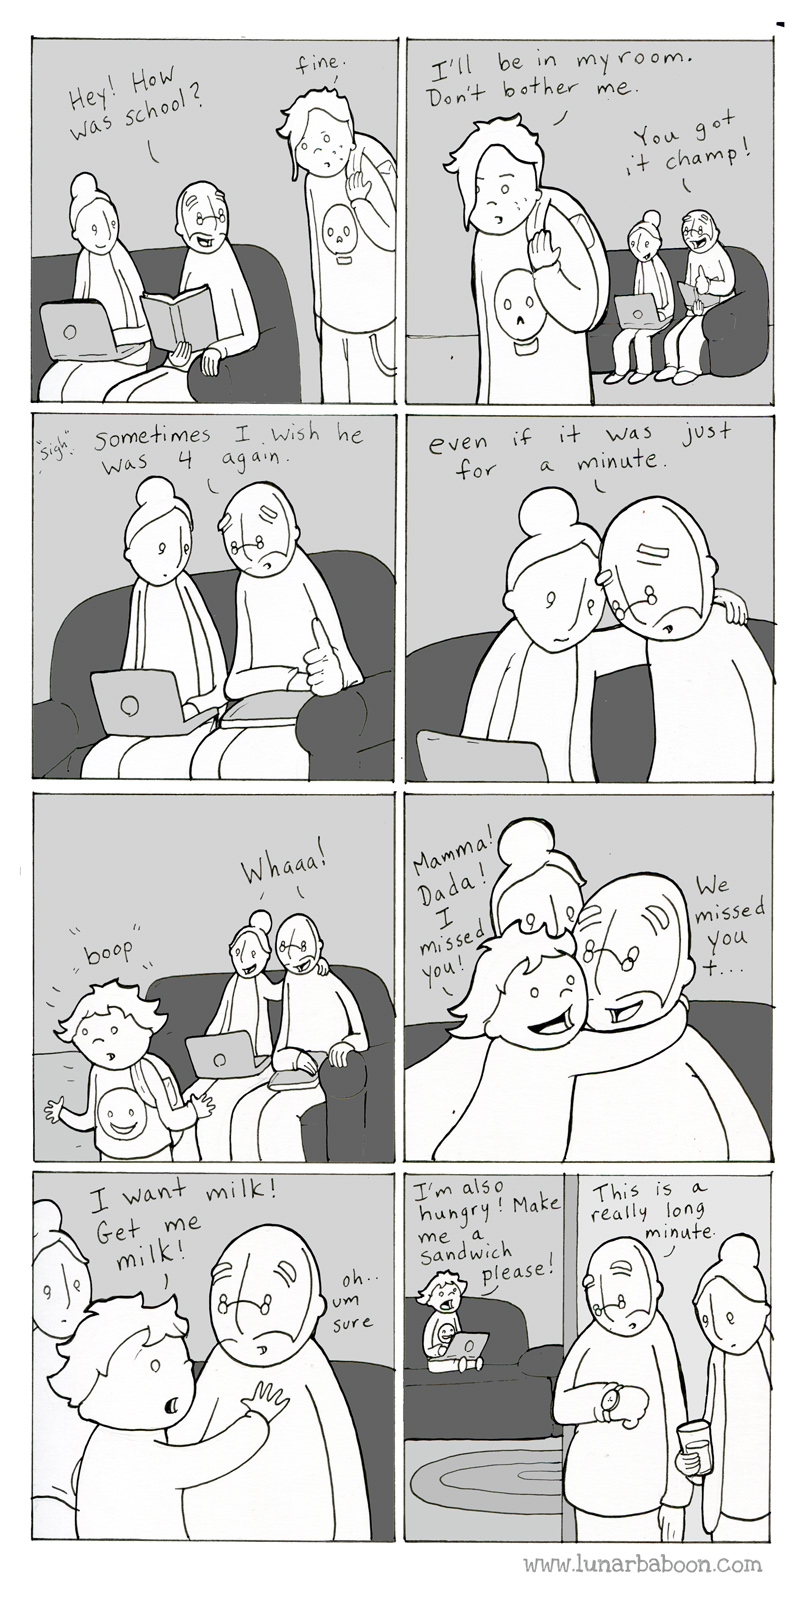 lunarbaboon-comics-adult-kids